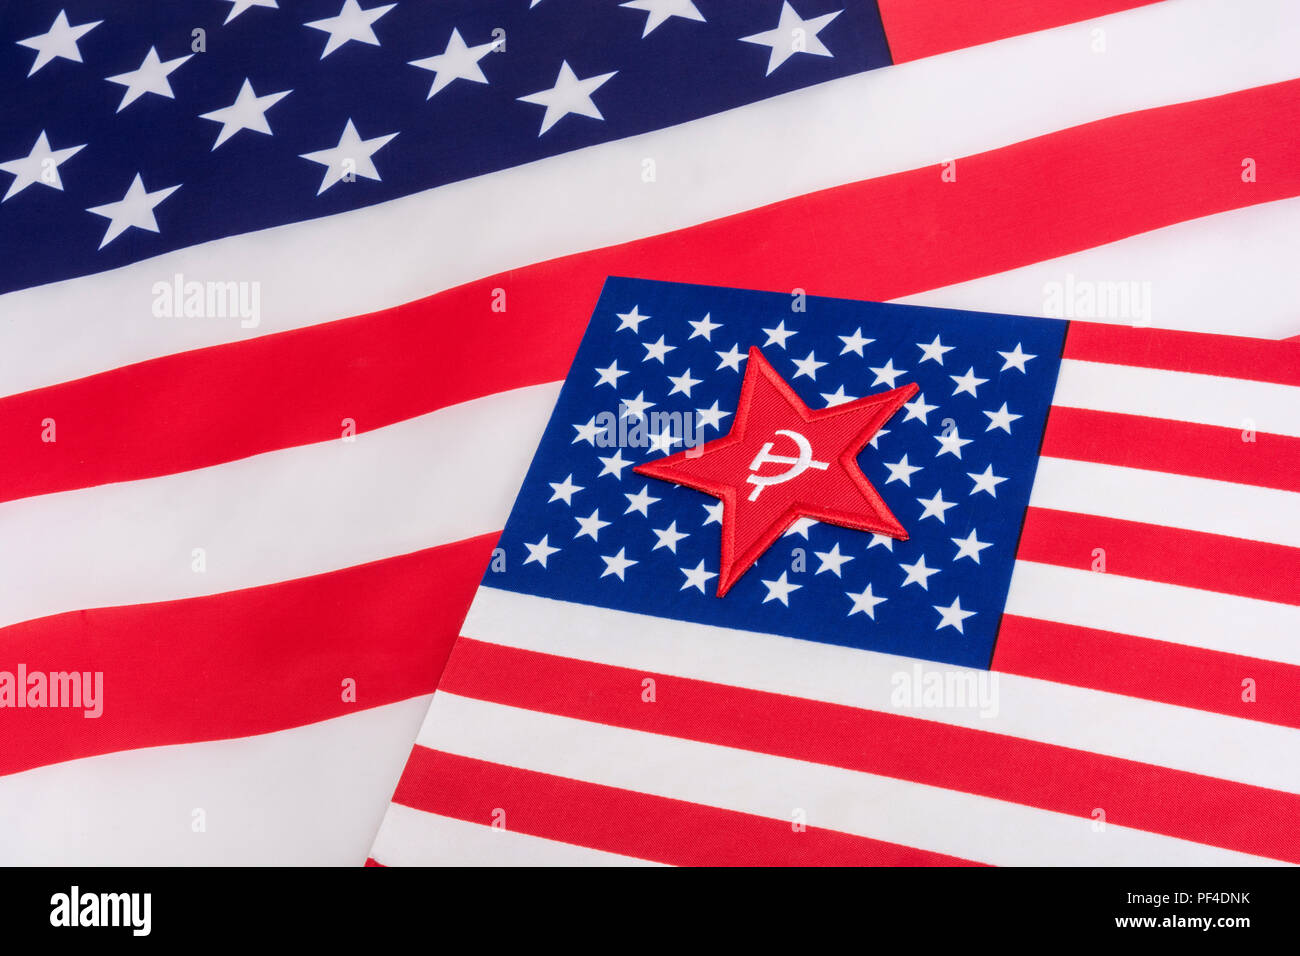 Red Star Hammer and Sickle badge with U.S / American Stars and Stripes flag. Metaphor U.S Radical Left, Activism, Democratic Socialists, US Elections. - Stock Image